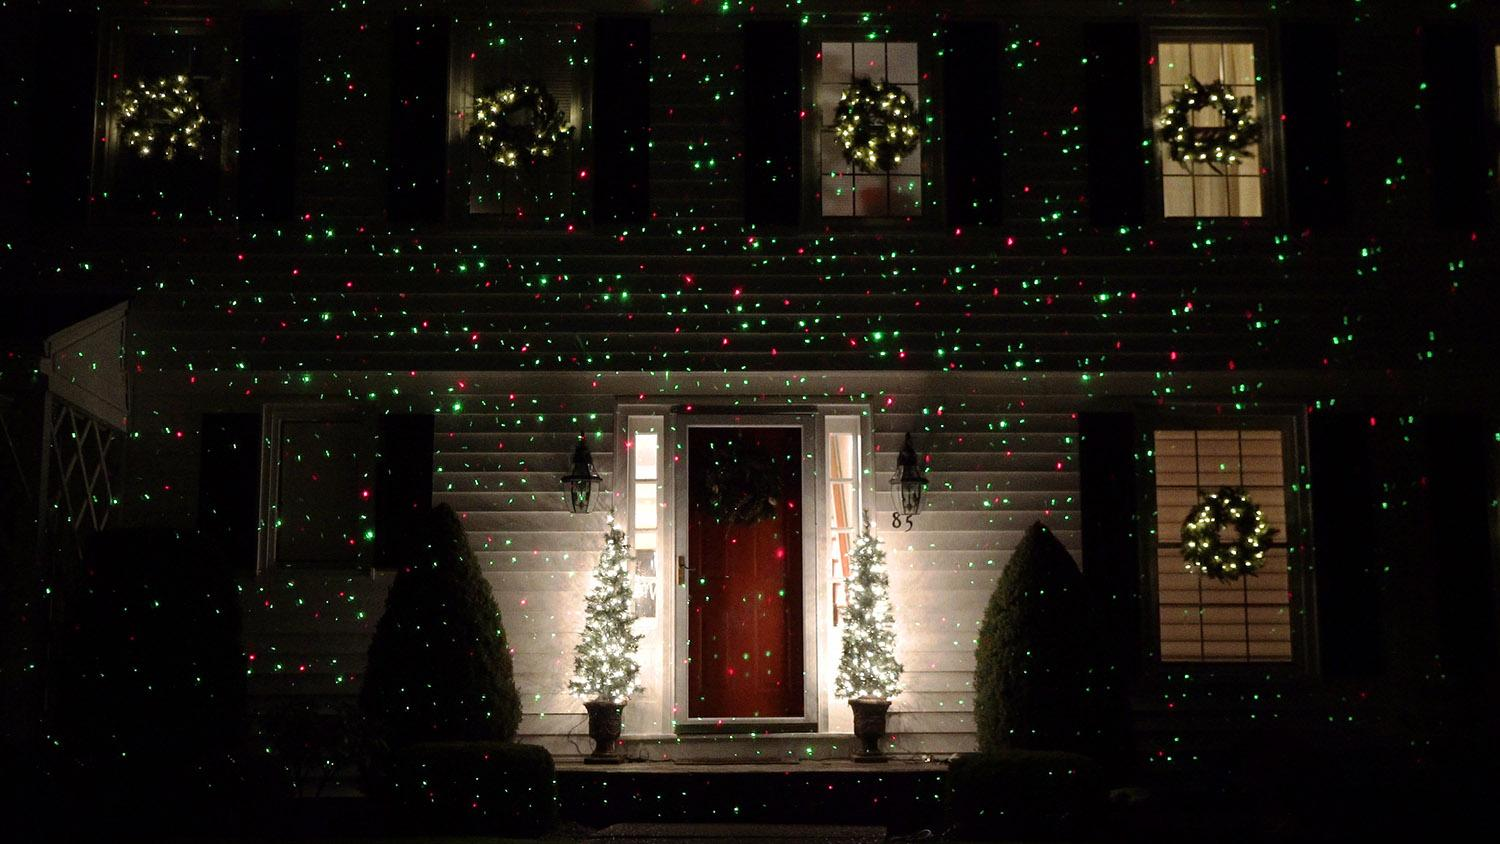 Outdoor Dynamic Red Green Christmas Laser Light Projector with Remote Control - Walmart.com